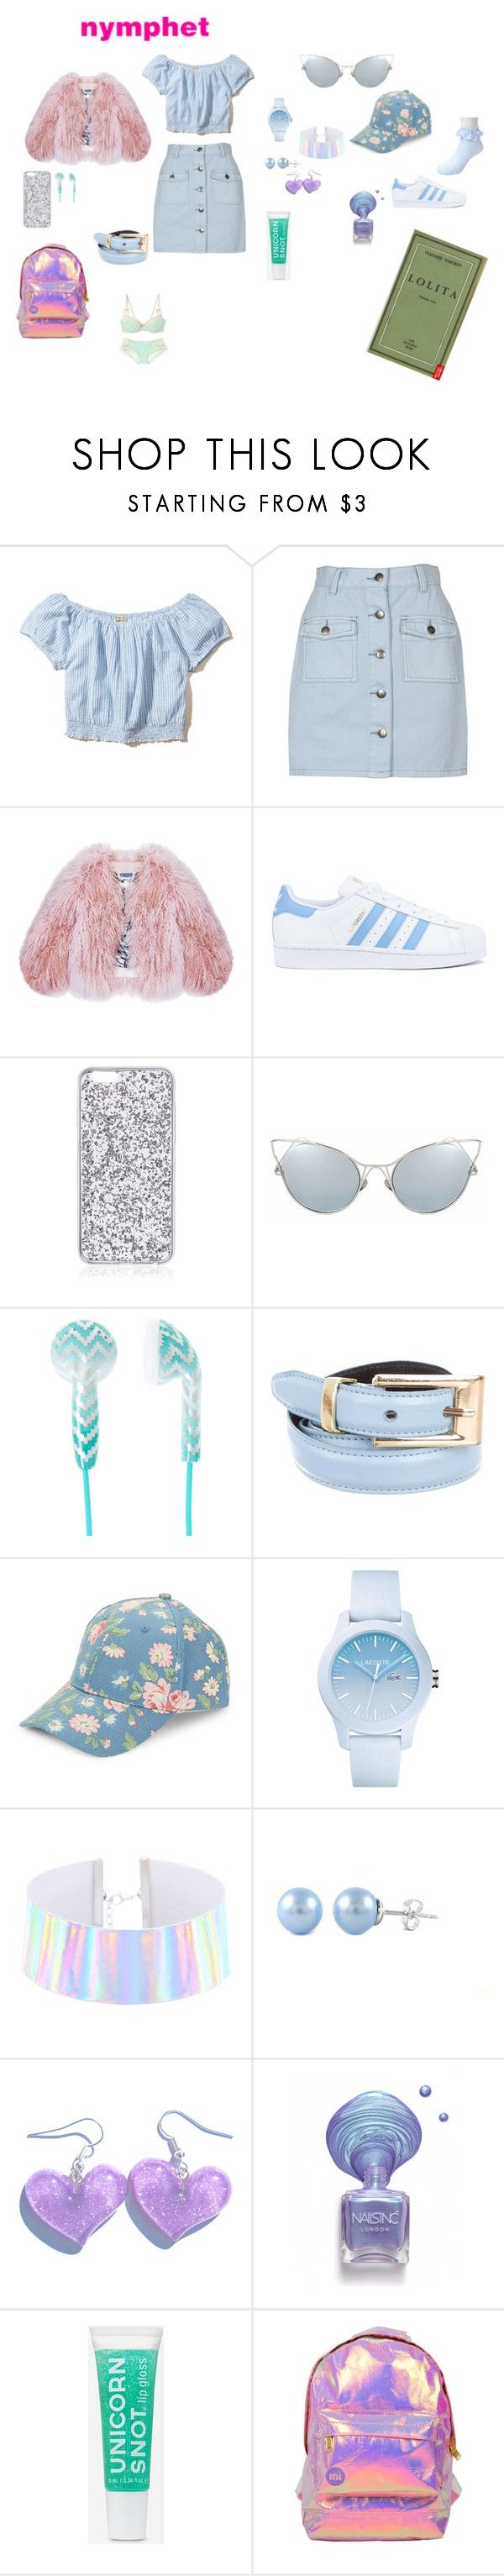 """Casual Blue Nymphet"" by deadlynightshadenymph on Polyvore featuring Hollister Co., MINKPINK, Edition, Florence Bridge, adidas, Oscar de la Renta, BCBGeneration, Lacoste, cutekawaii and Miss Selfridge"